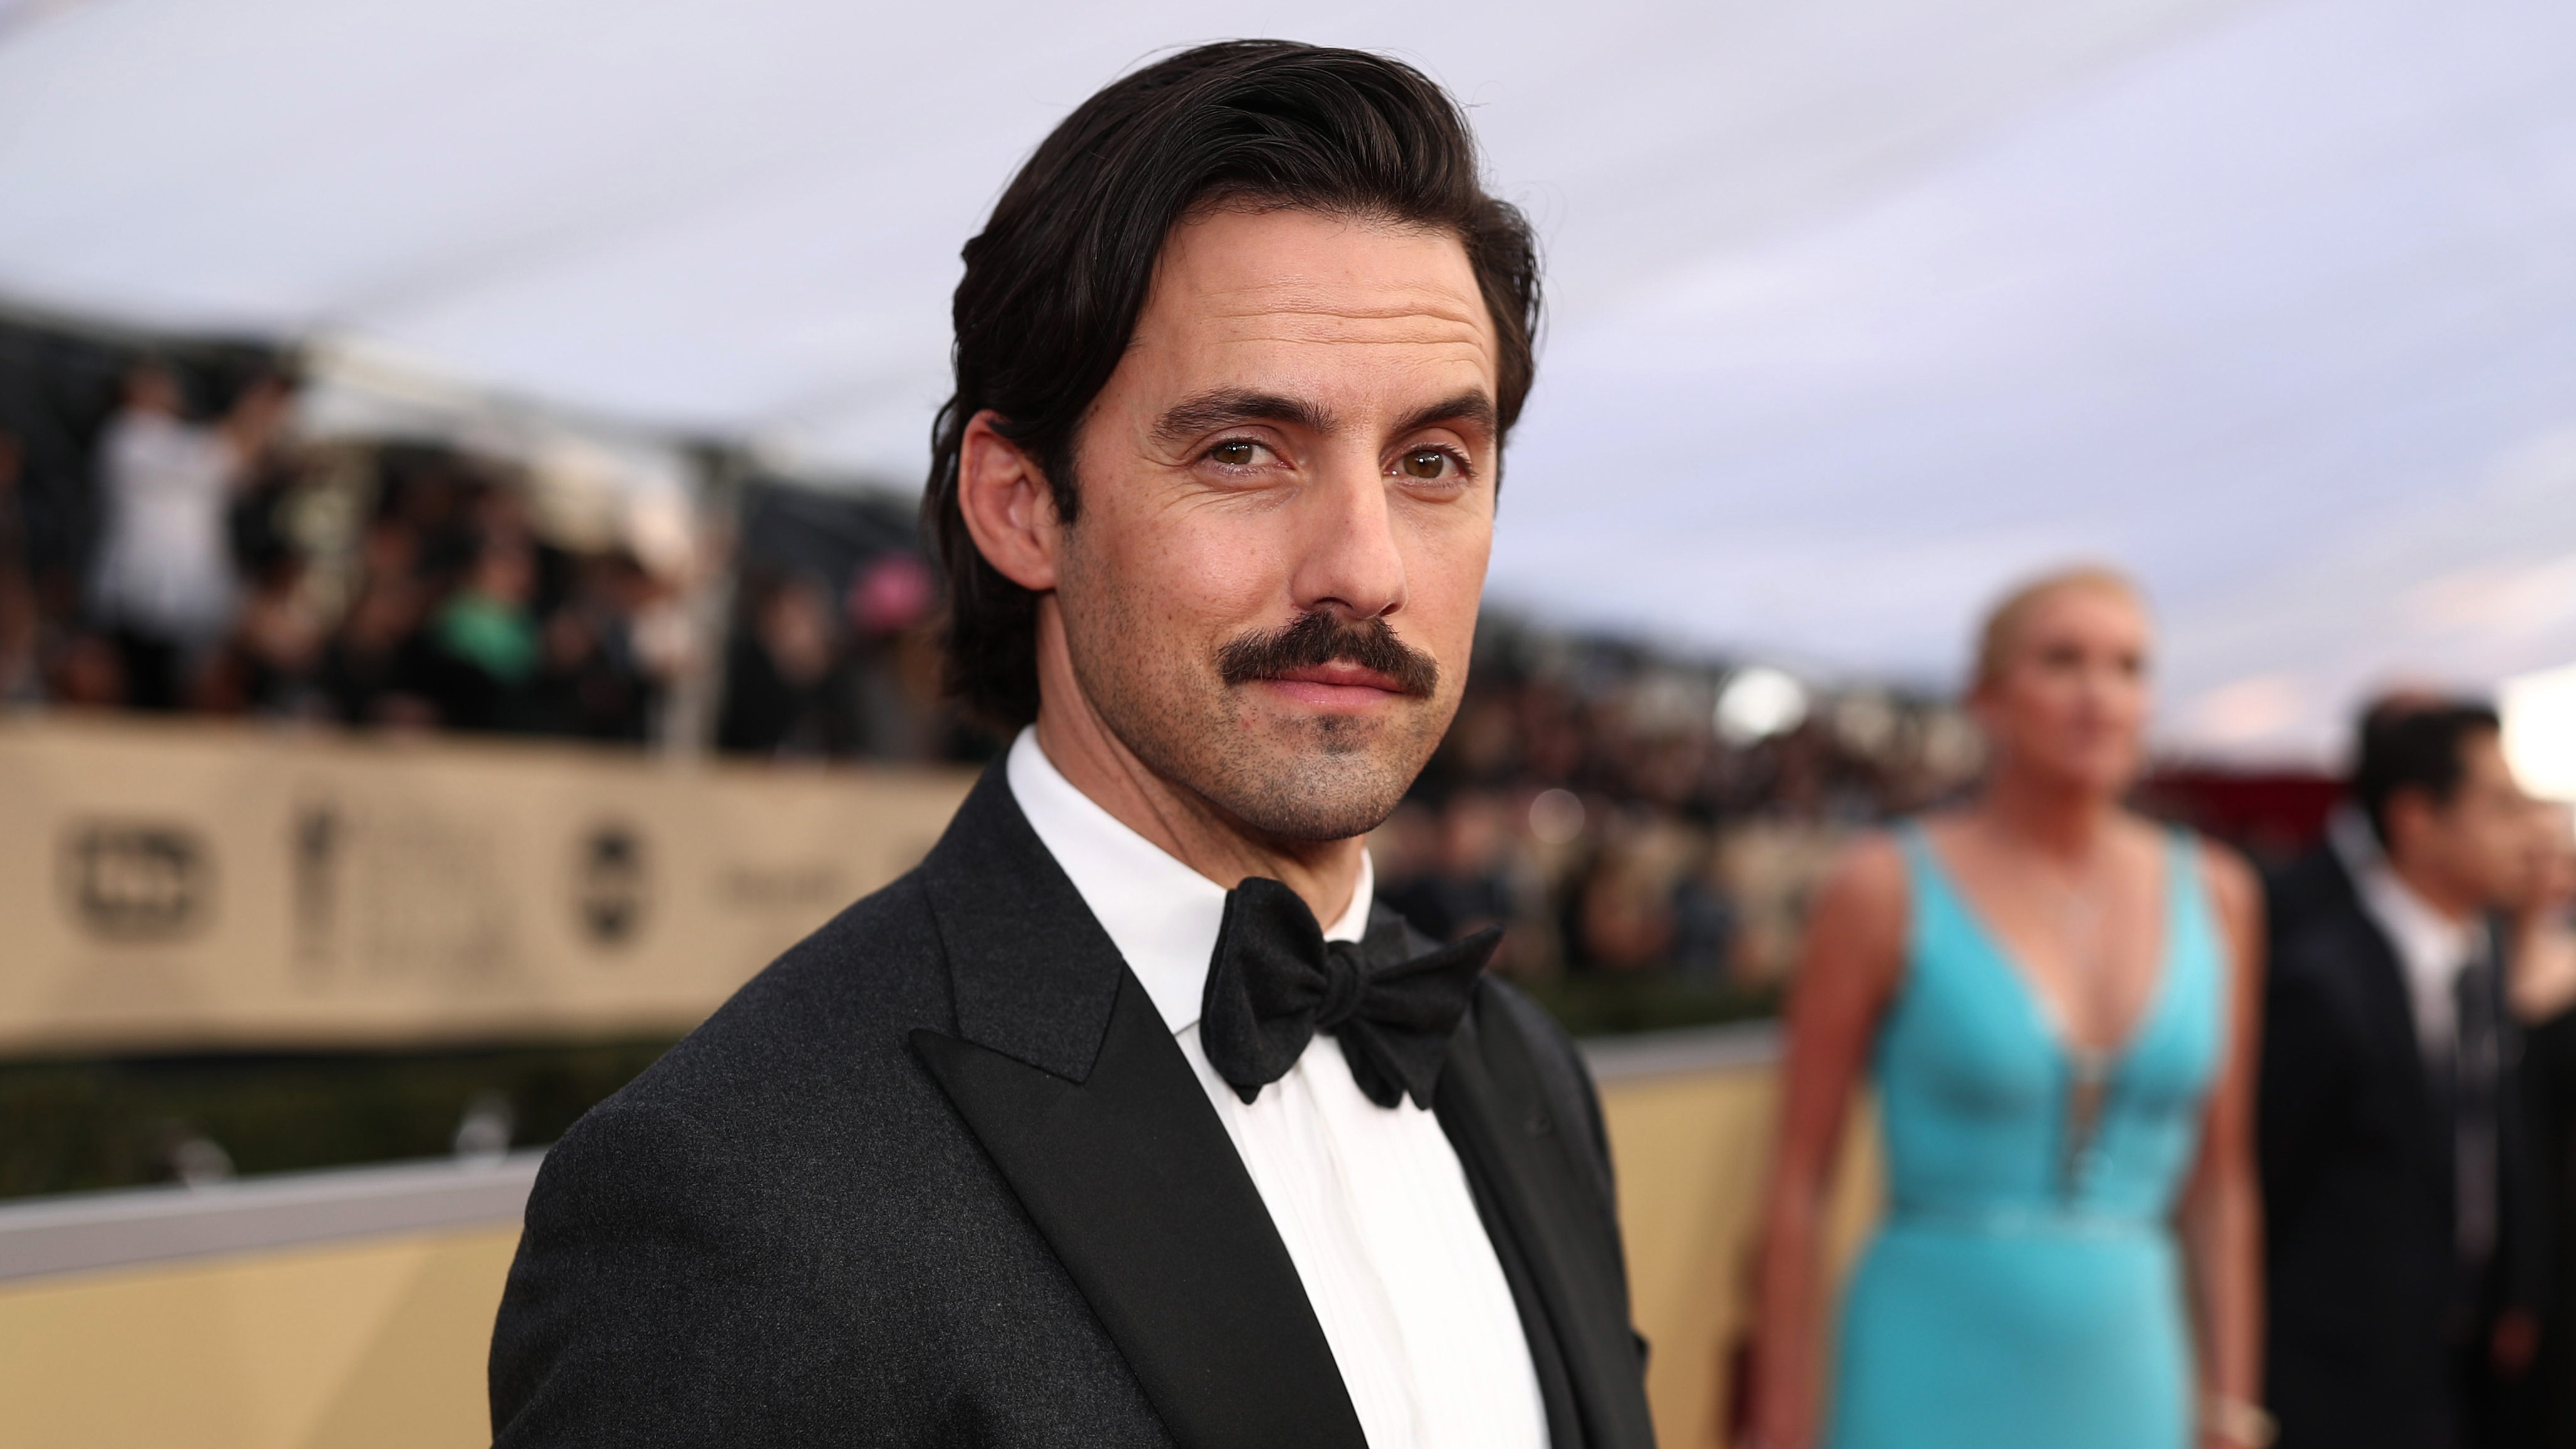 12 Gifts Of Christmas Cast.Milo Ventimiglia Reportedly Dishes Out 10k On Christmas